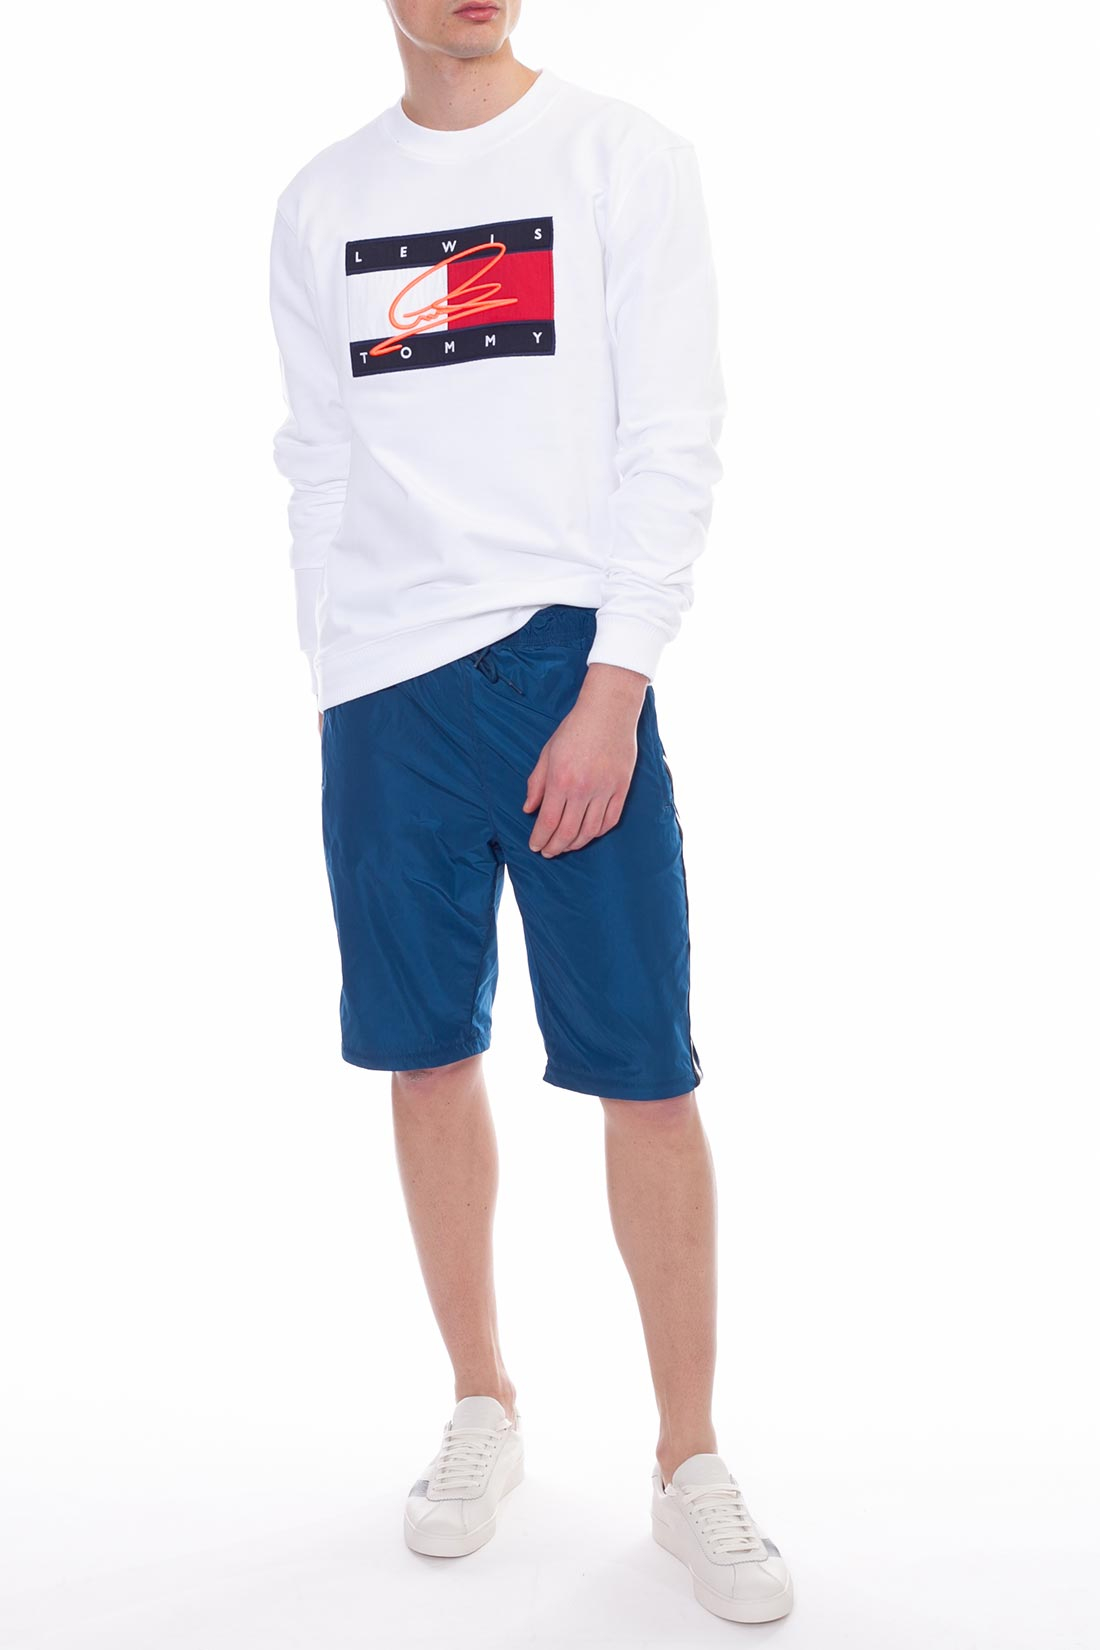 TOMMY HILFIGER X LEWIS HAMILTON Men's white hoodie with logo flag